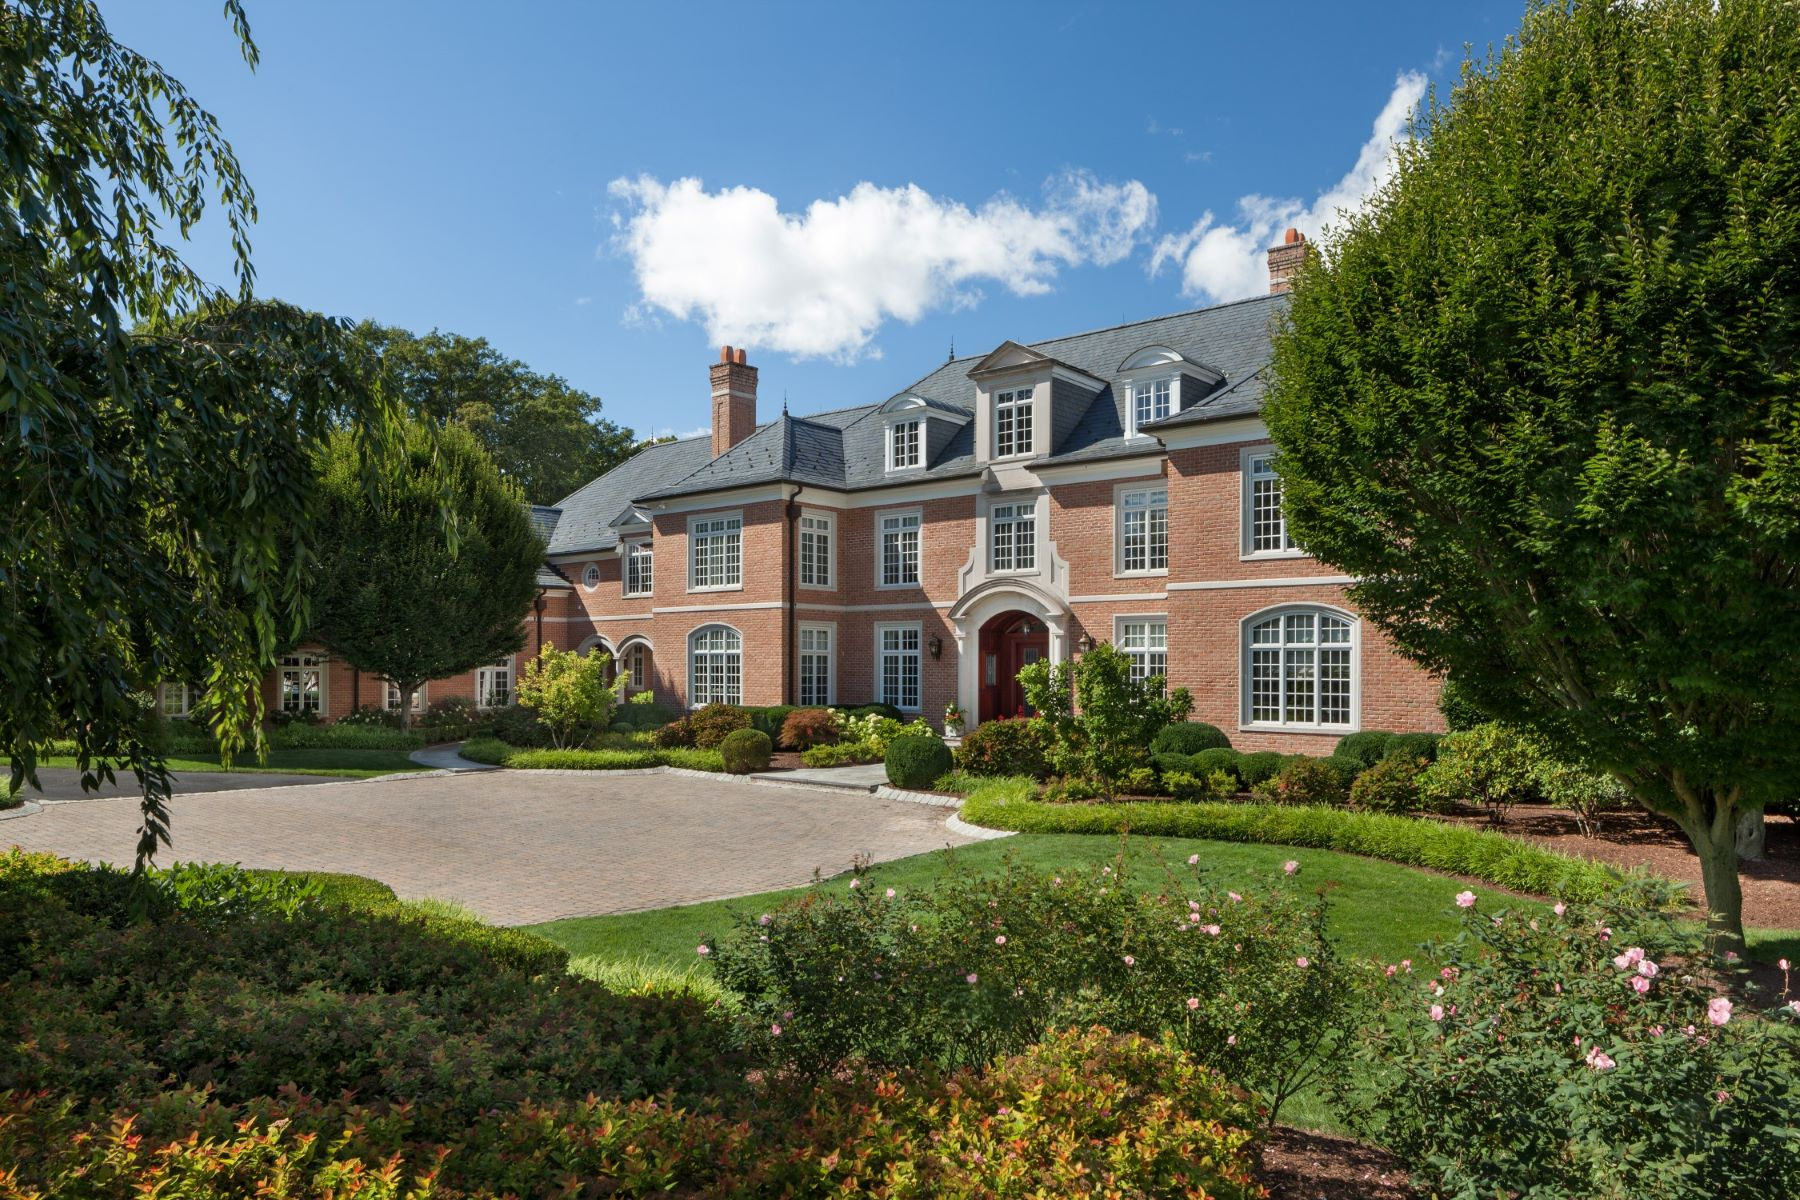 Single Family Home for Sale at Mountaintop Manor 141 Mountain Top Road Bernardsville, New Jersey 07924 United States